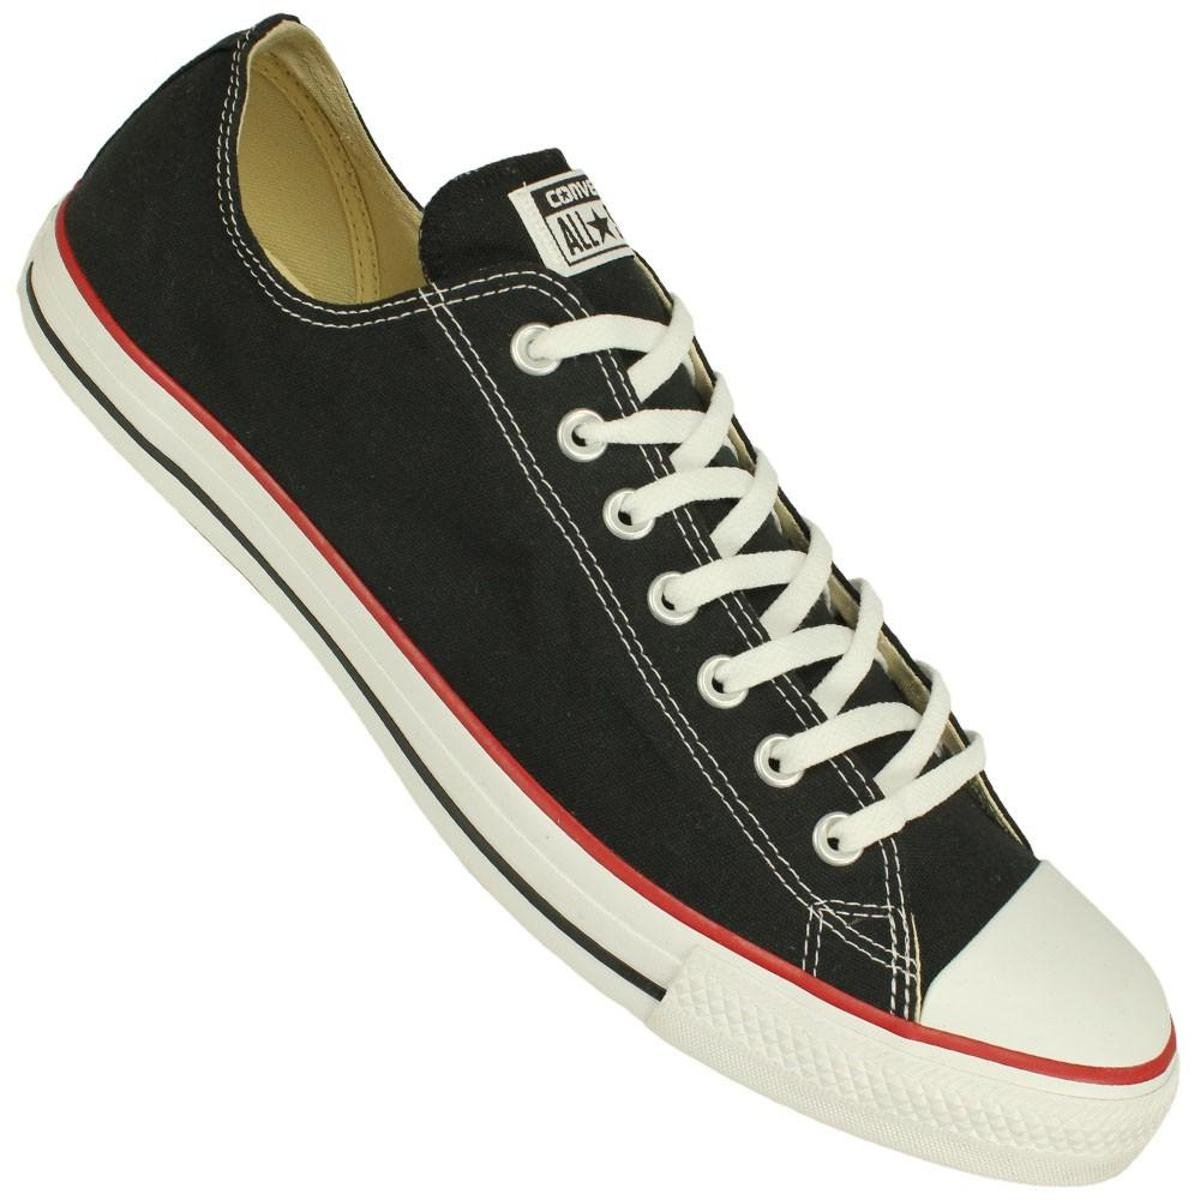 b389355012c Tênis Converse All Star Ct As Core Ox - Compre Agora